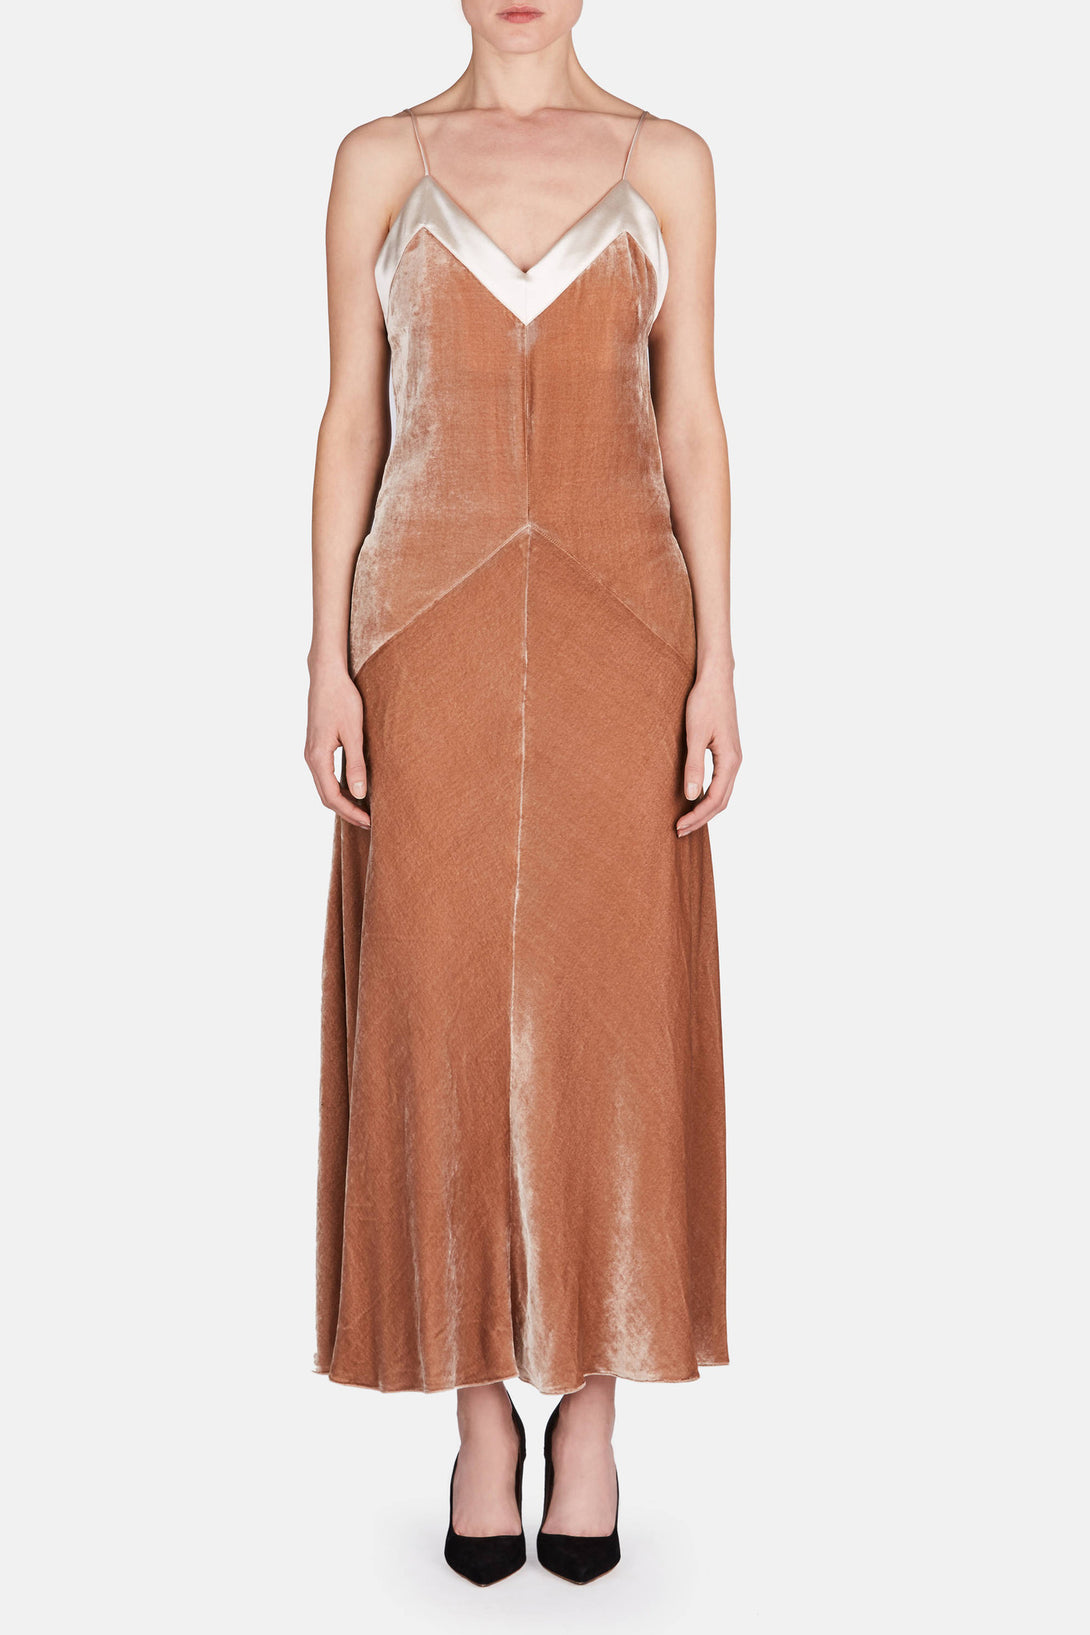 Slip Dress - Nude